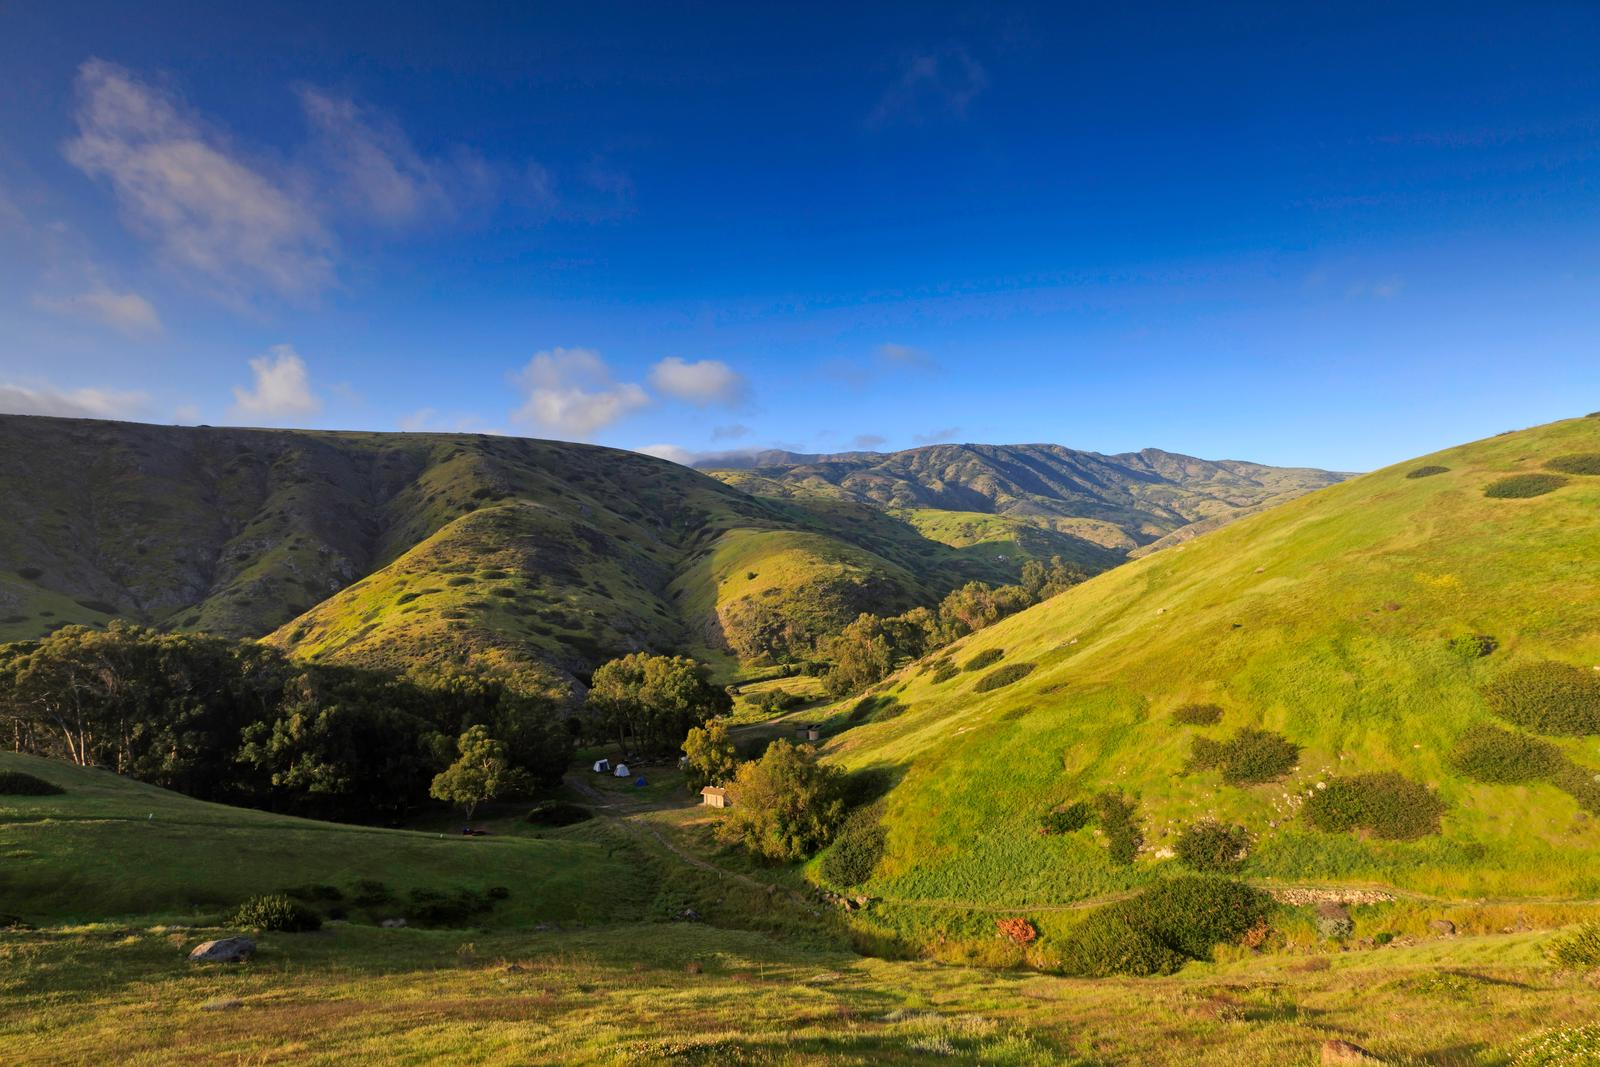 View of canyon nestled in low rolling, grass covered hills.Scorpion Canyon Campground, Santa Cruz Island